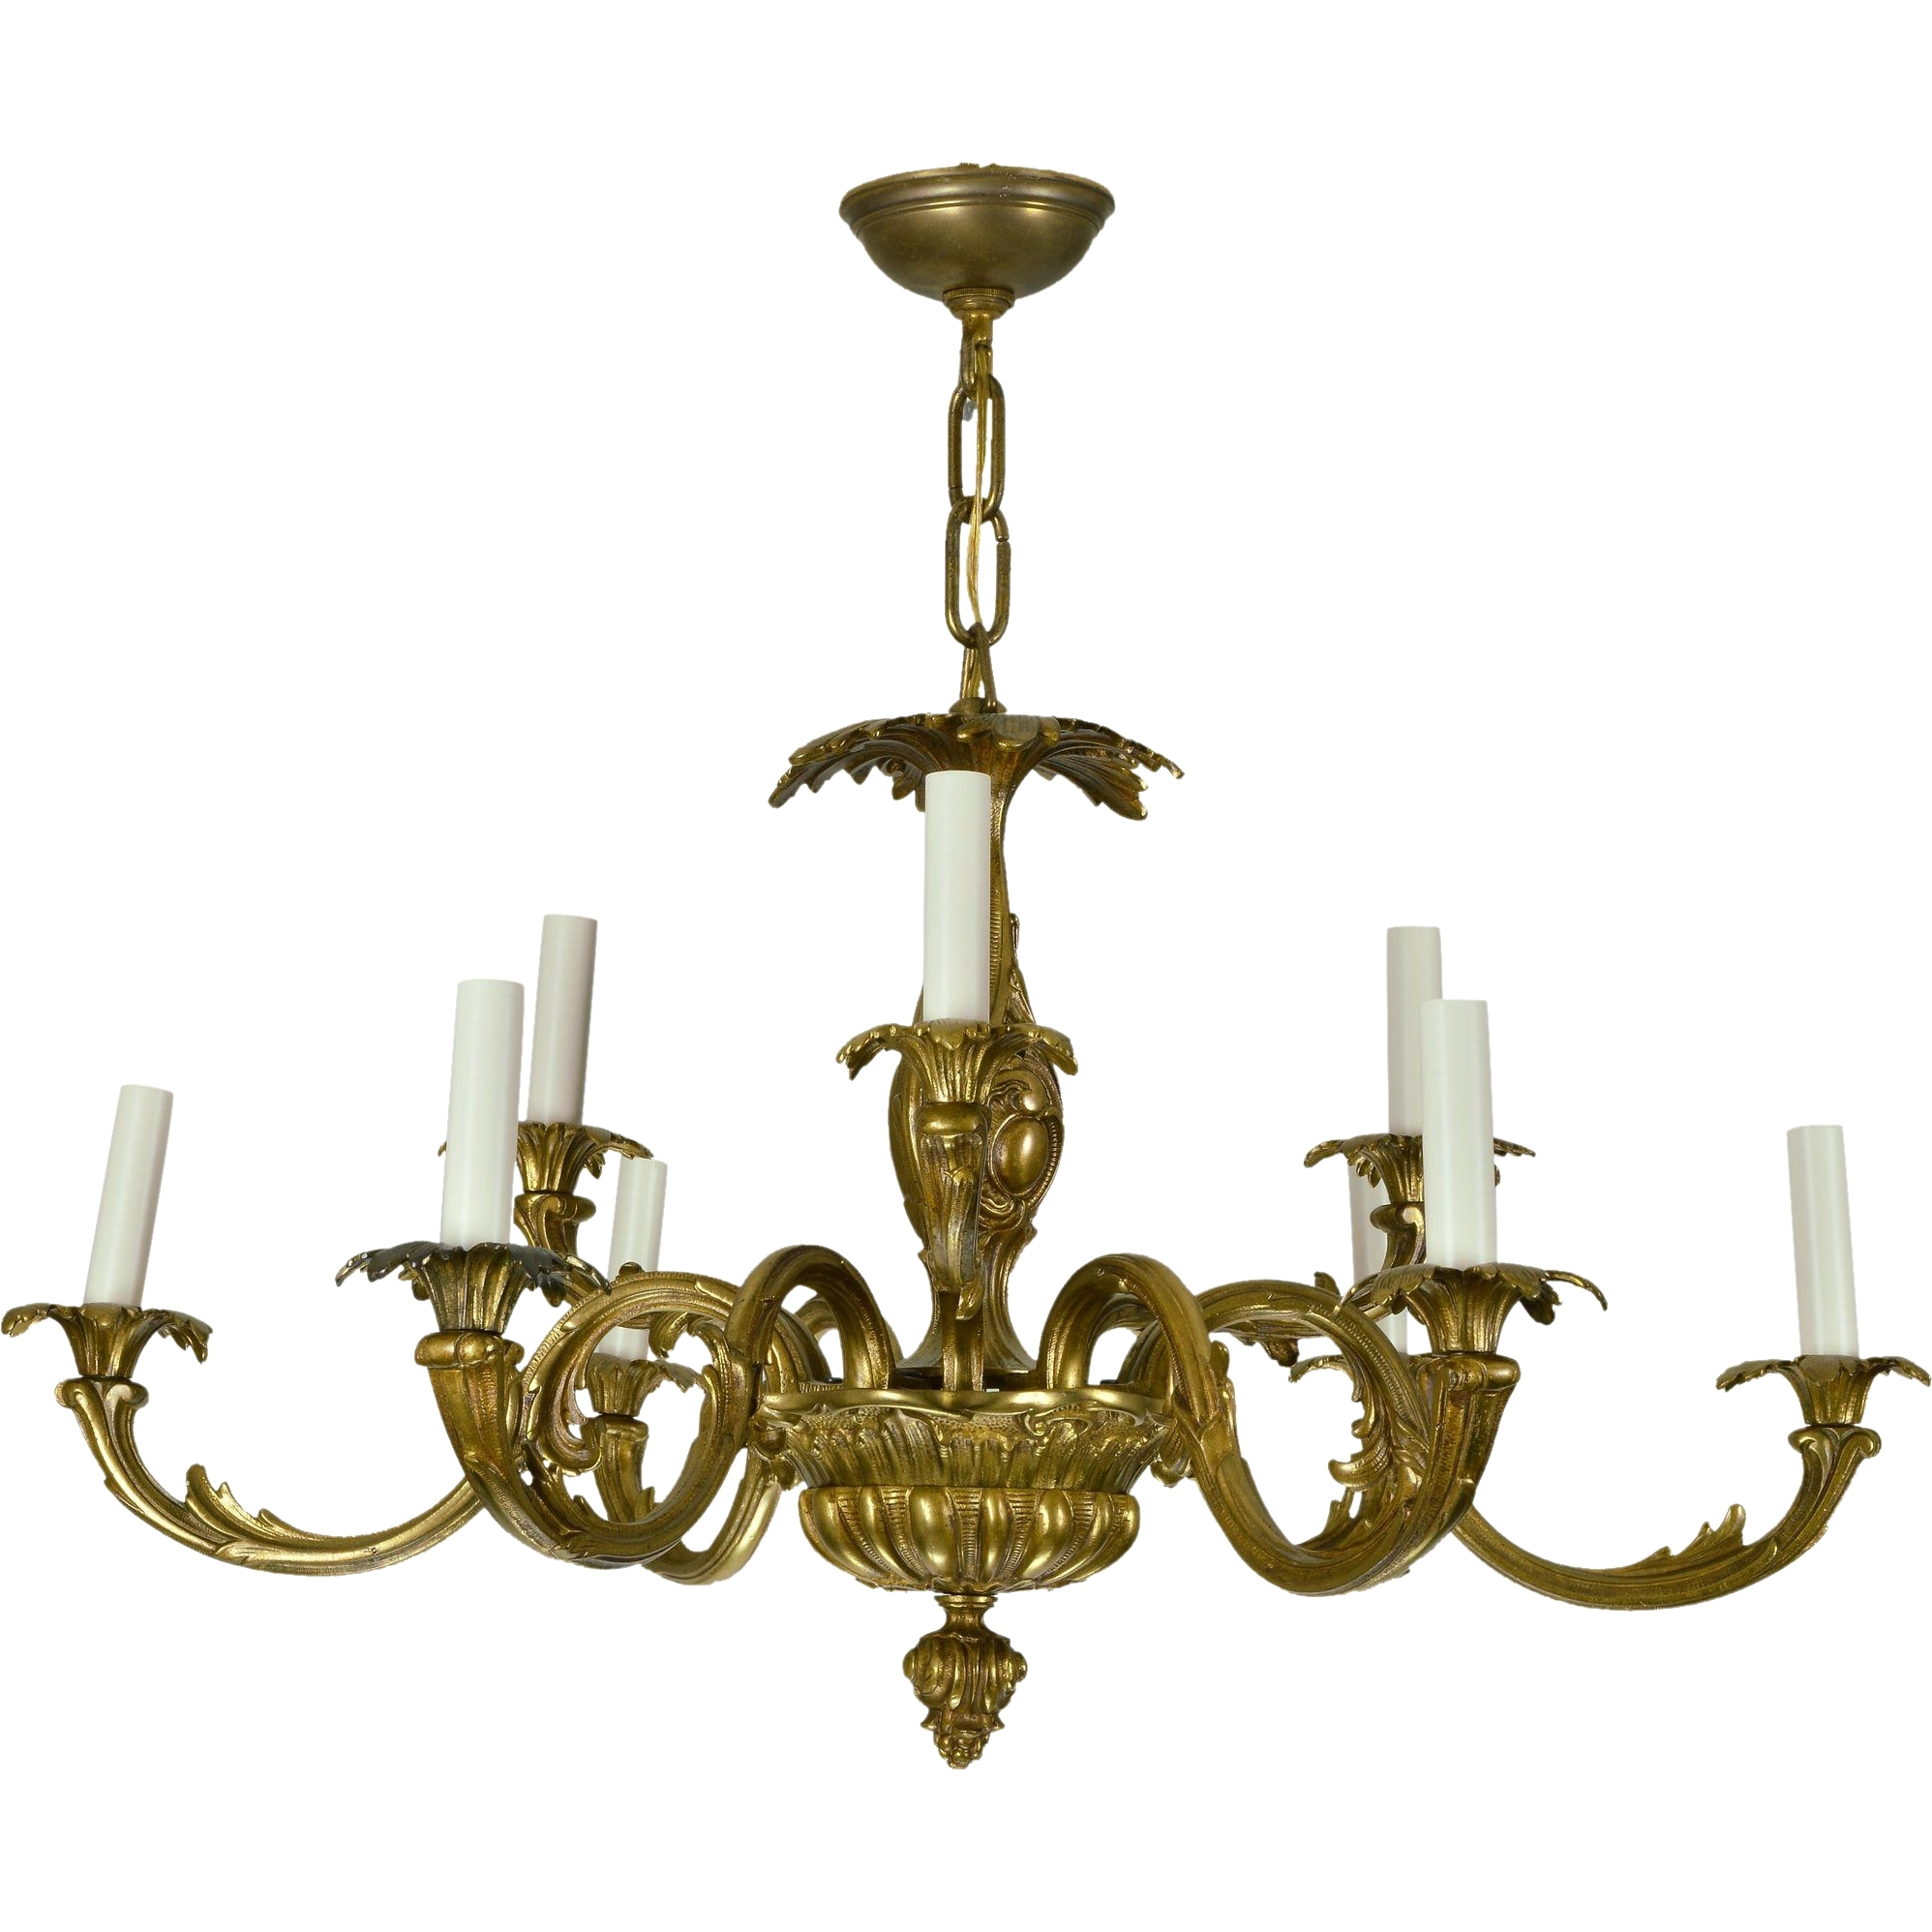 Home Design : Graceful Antique Brass Chandeliers Vintage Chandelier Intended For Most Recent Old Brass Chandeliers (View 7 of 15)